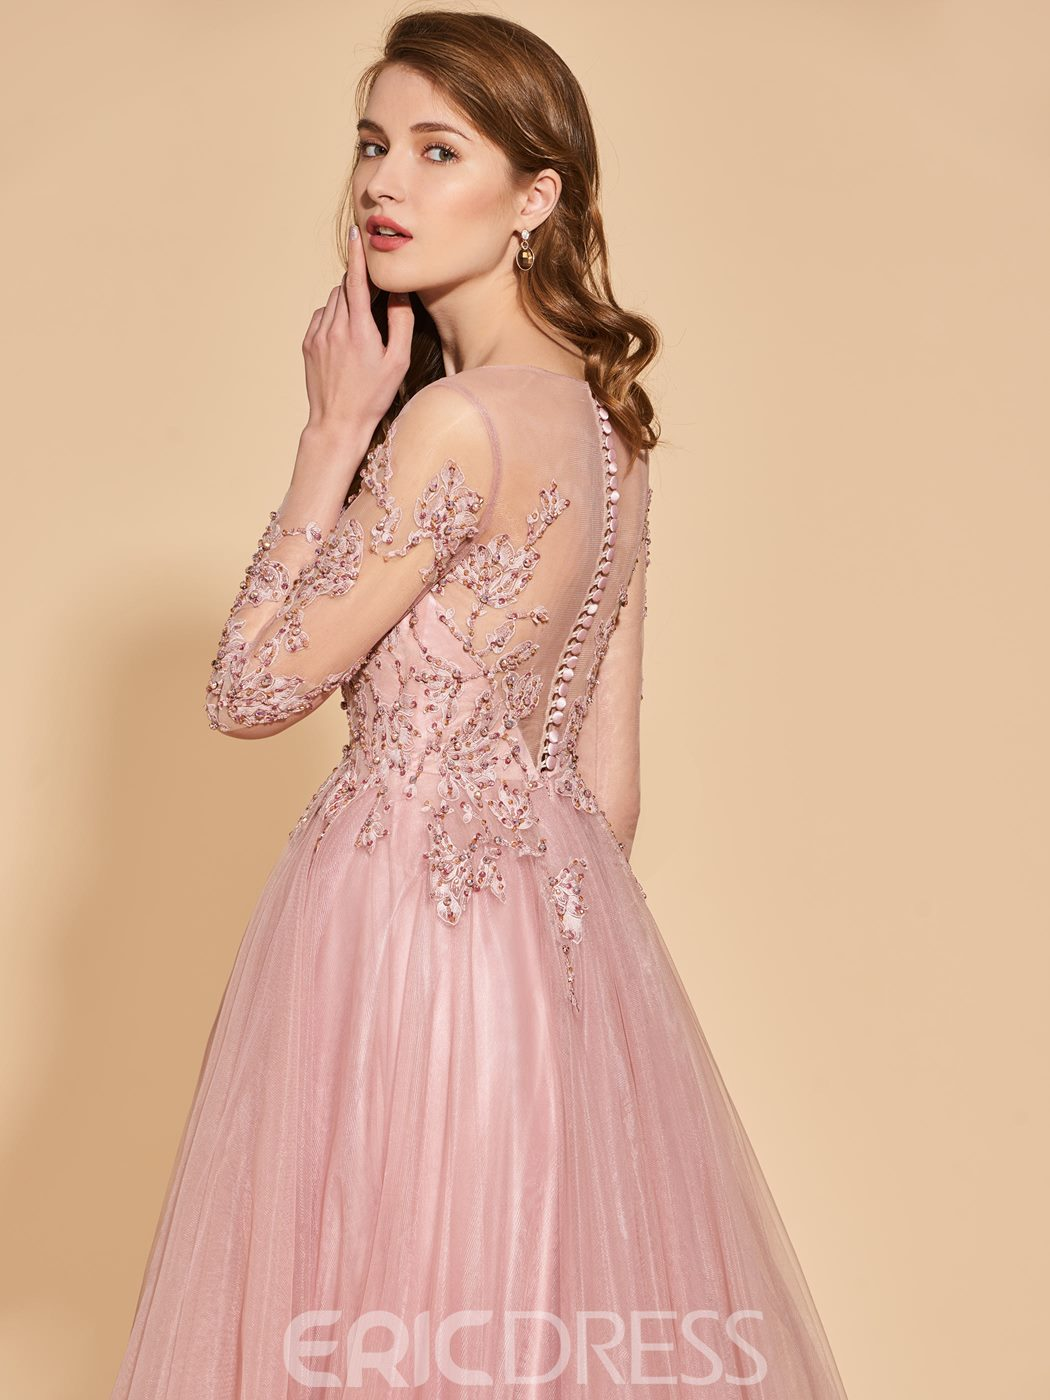 Ericdress A Line Long Sleeve Evening Dress With Beadings And Applique